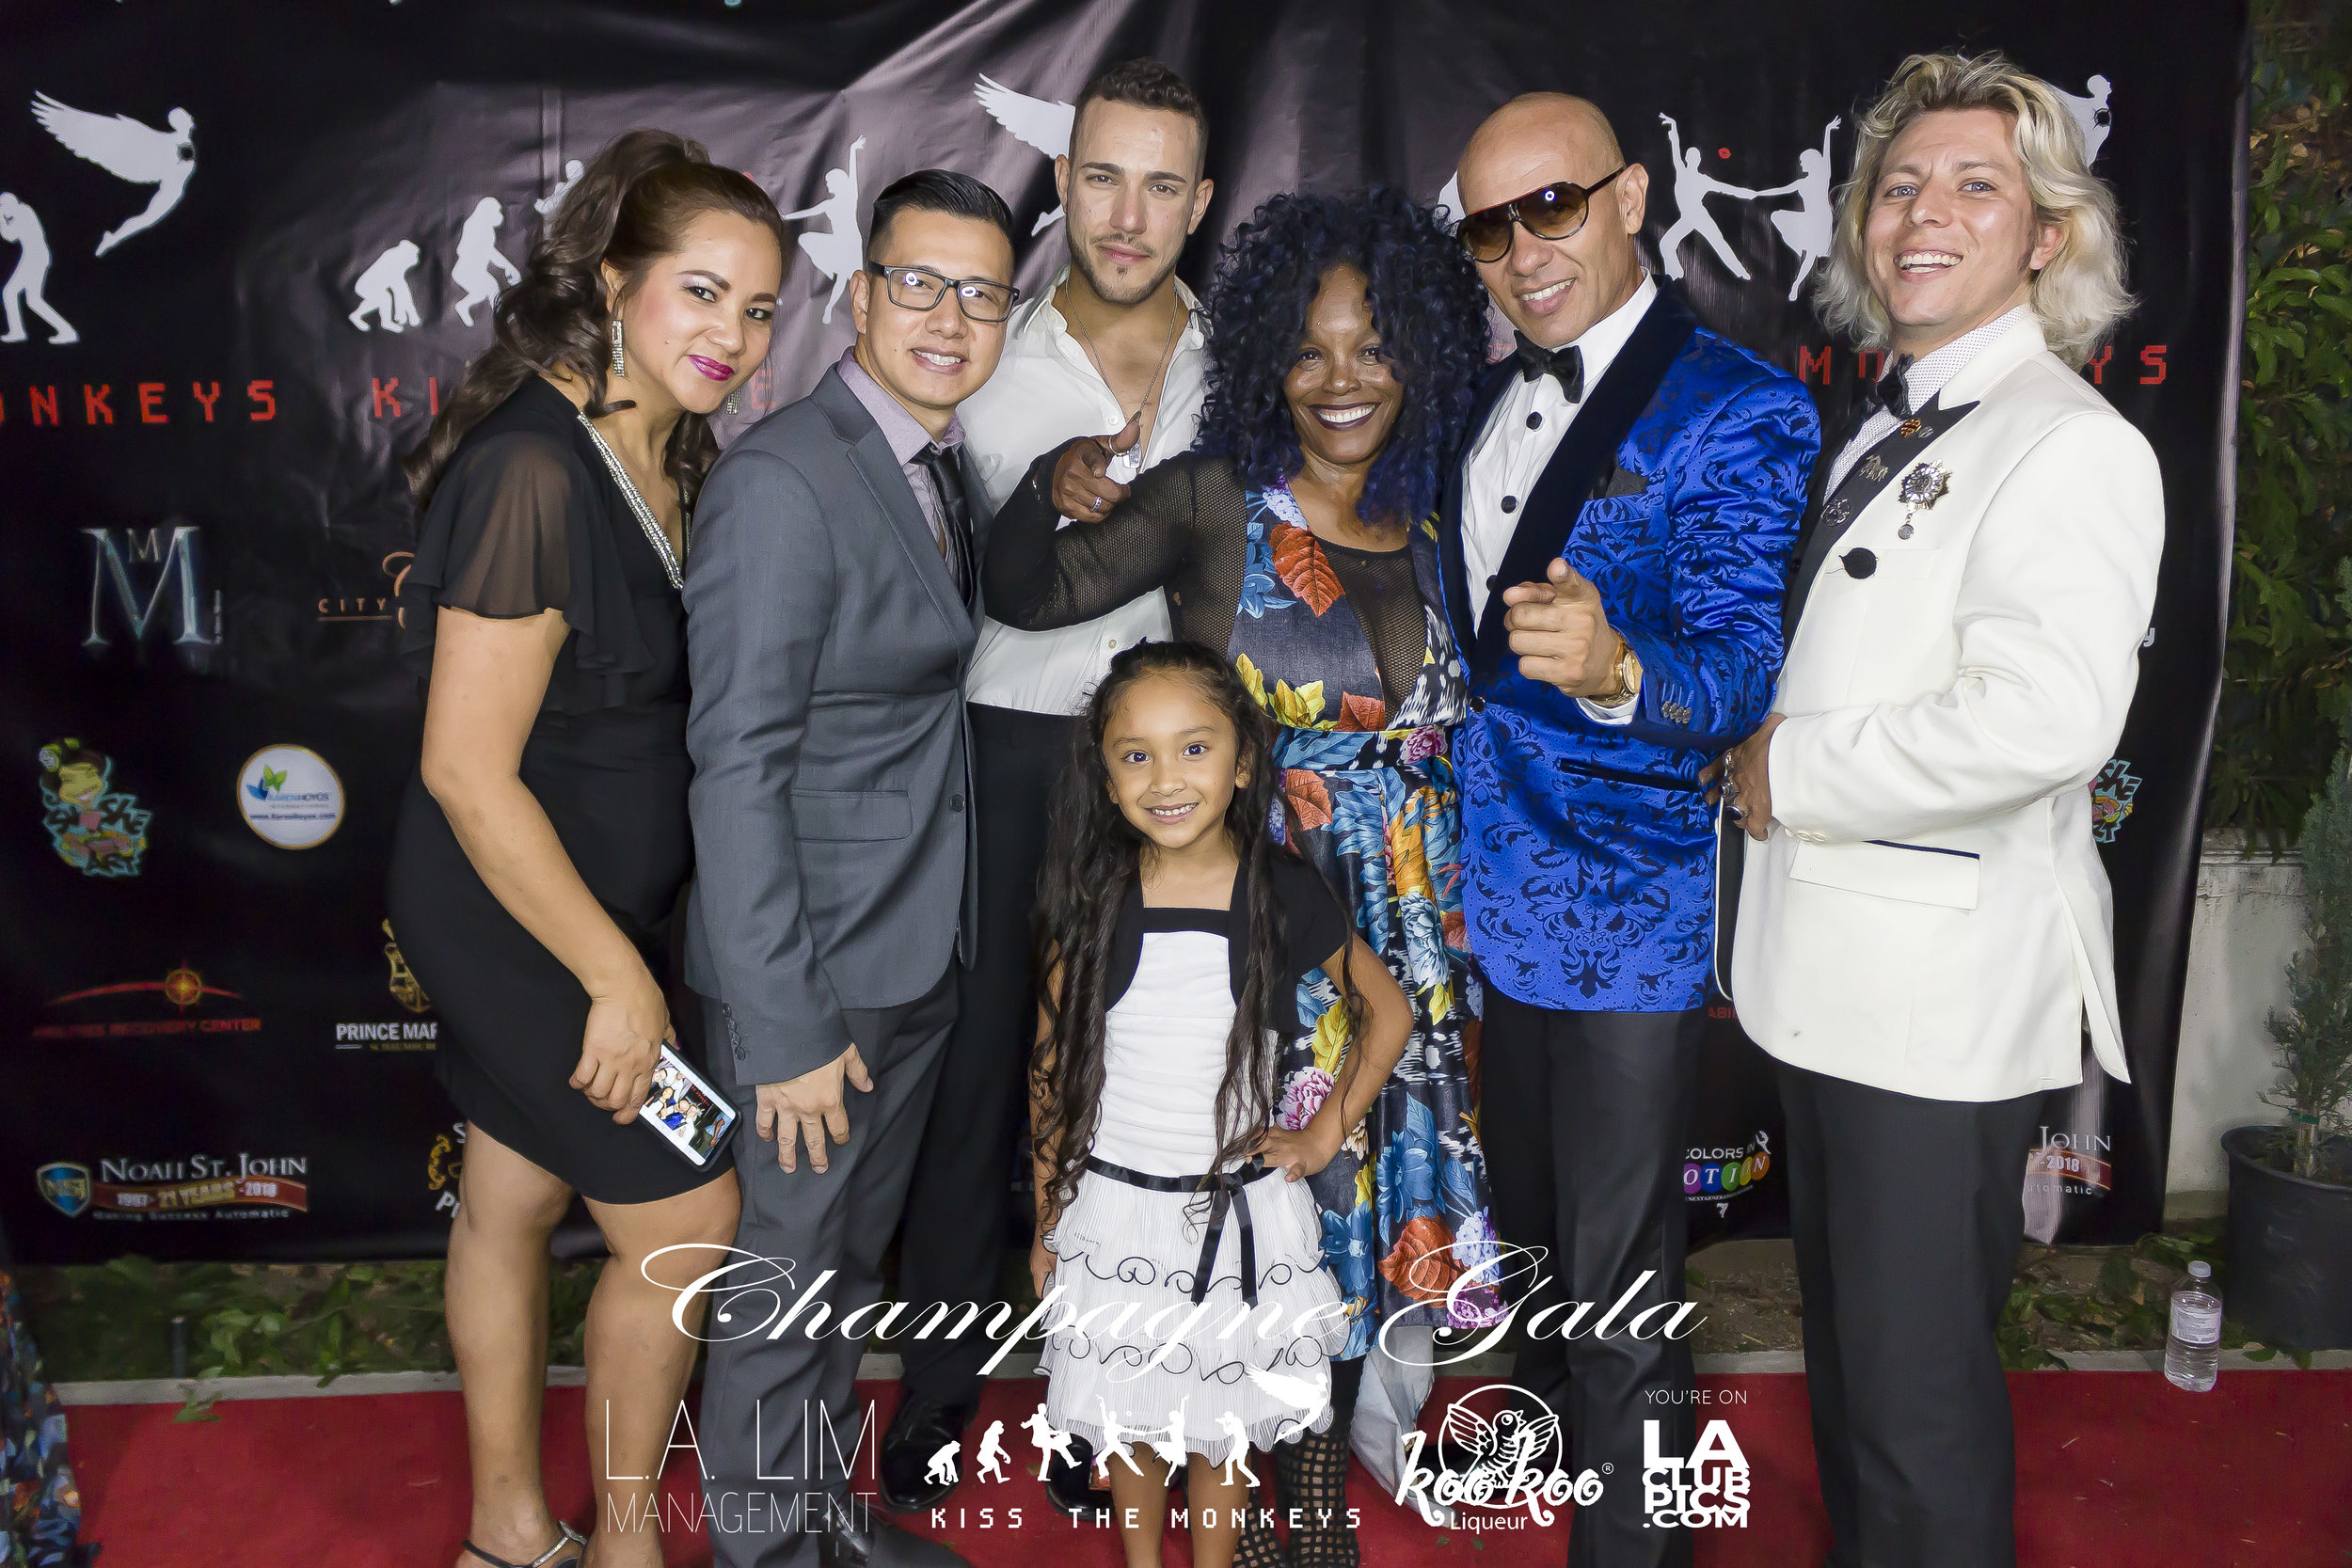 Kiss The Monkeys - Champagne Gala - 07-21-18_162.jpg